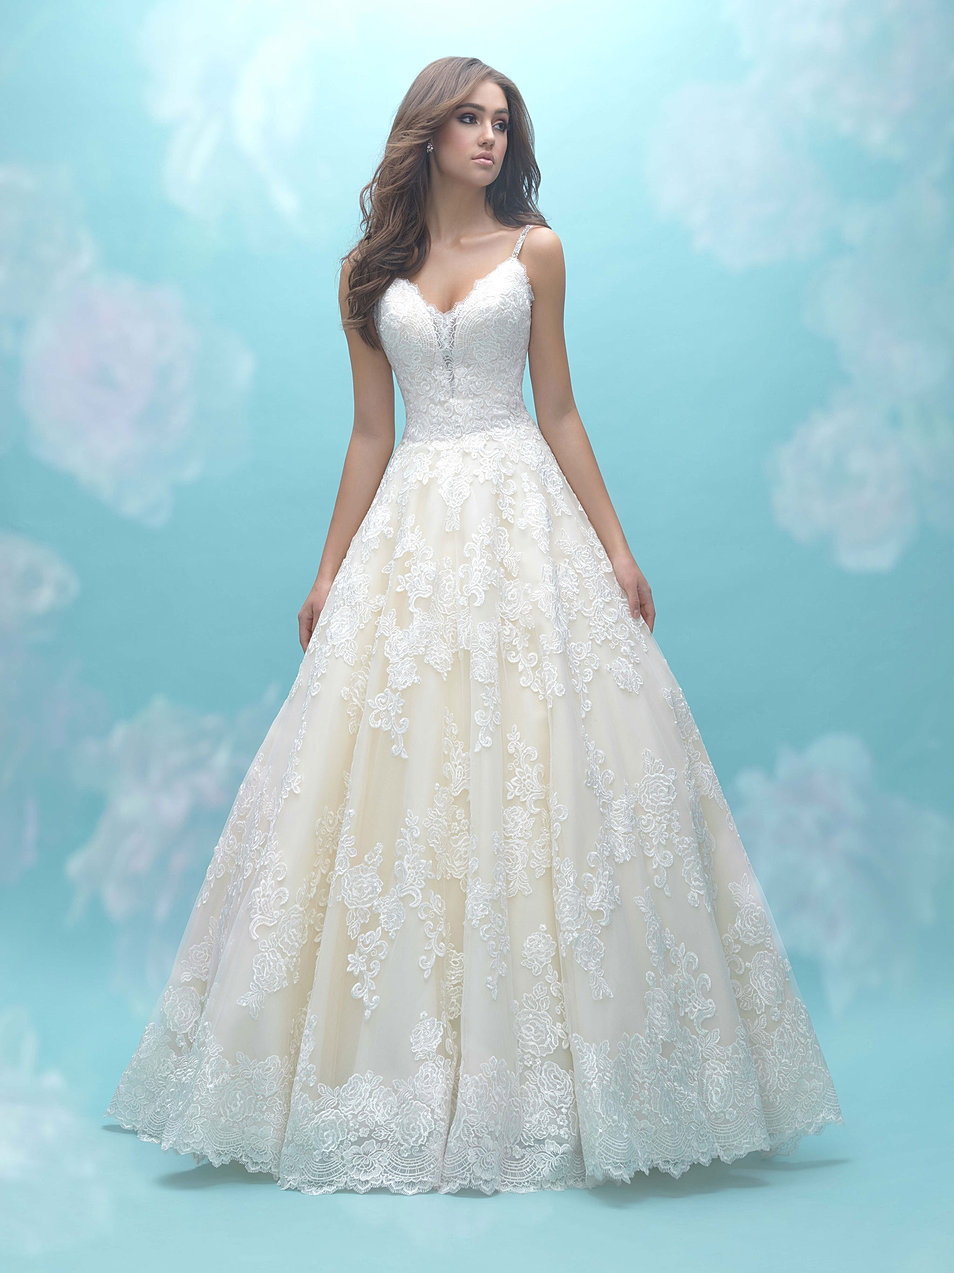 Colorful Wedding Gowns Ottawa Ensign - All Wedding Dresses ...